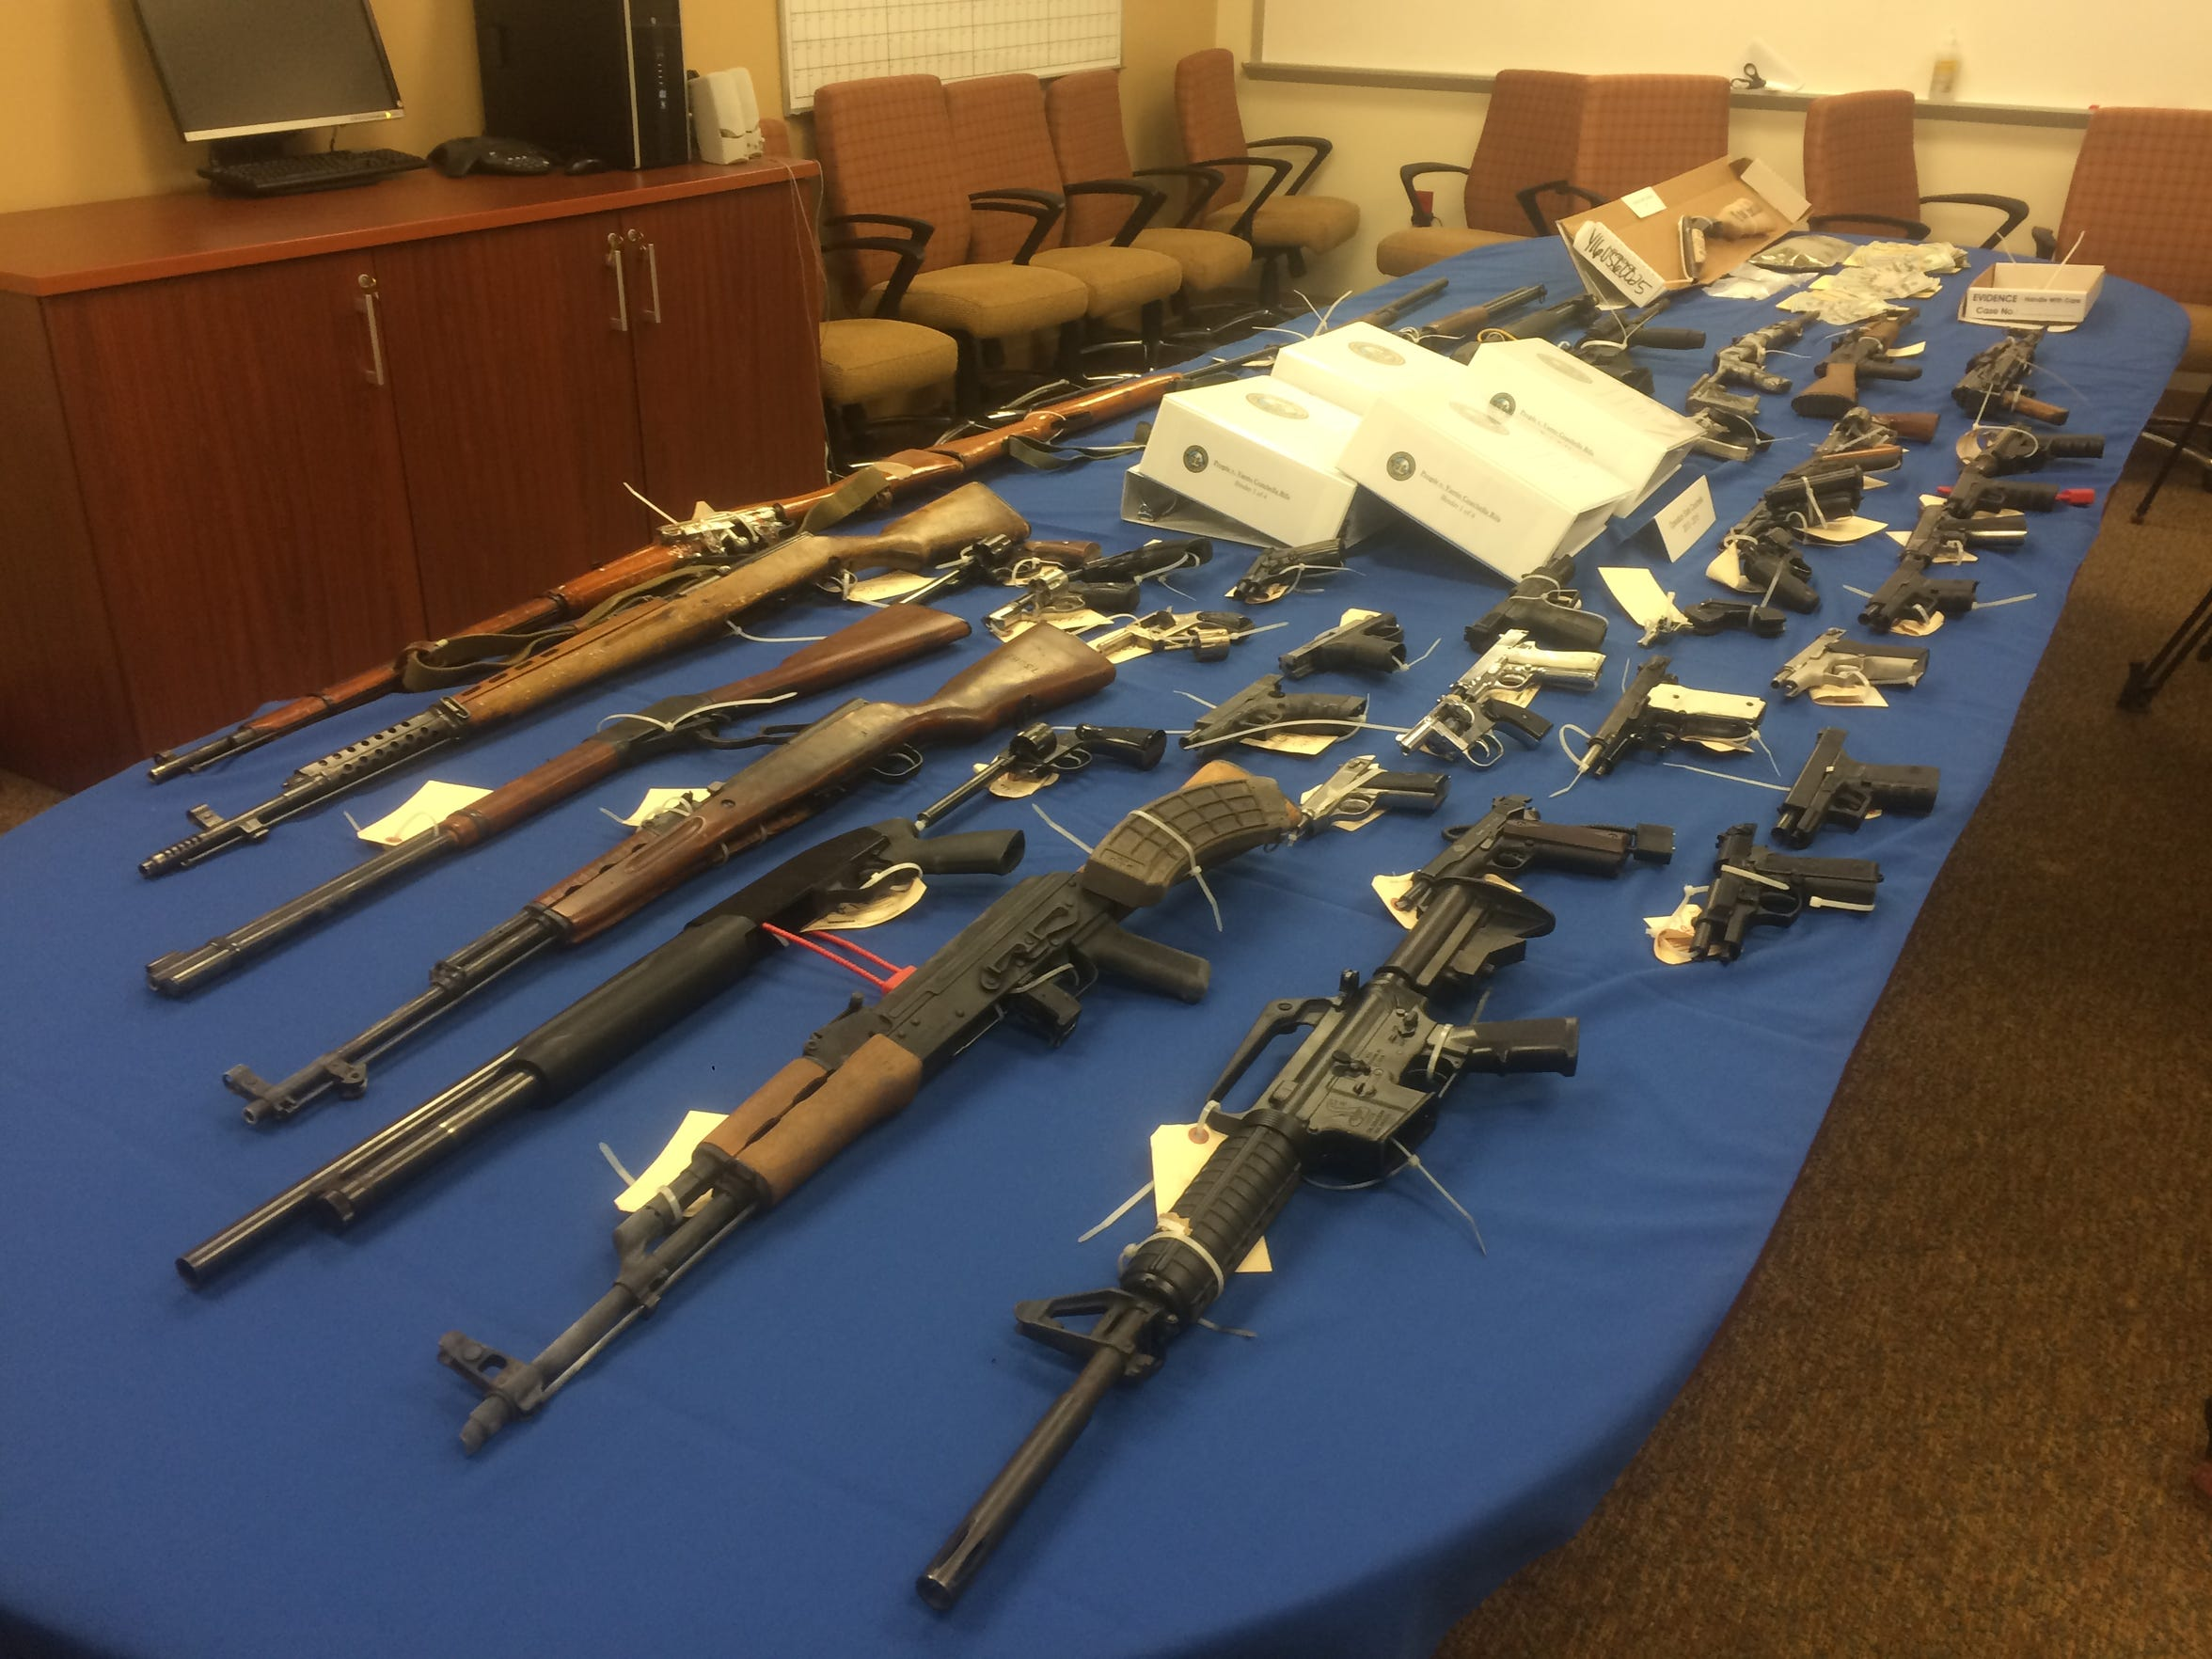 Law enforcement personnel at the sheriff's station in Thermal display a collection of guns seized from Varrio Coachella Rifa during raids.